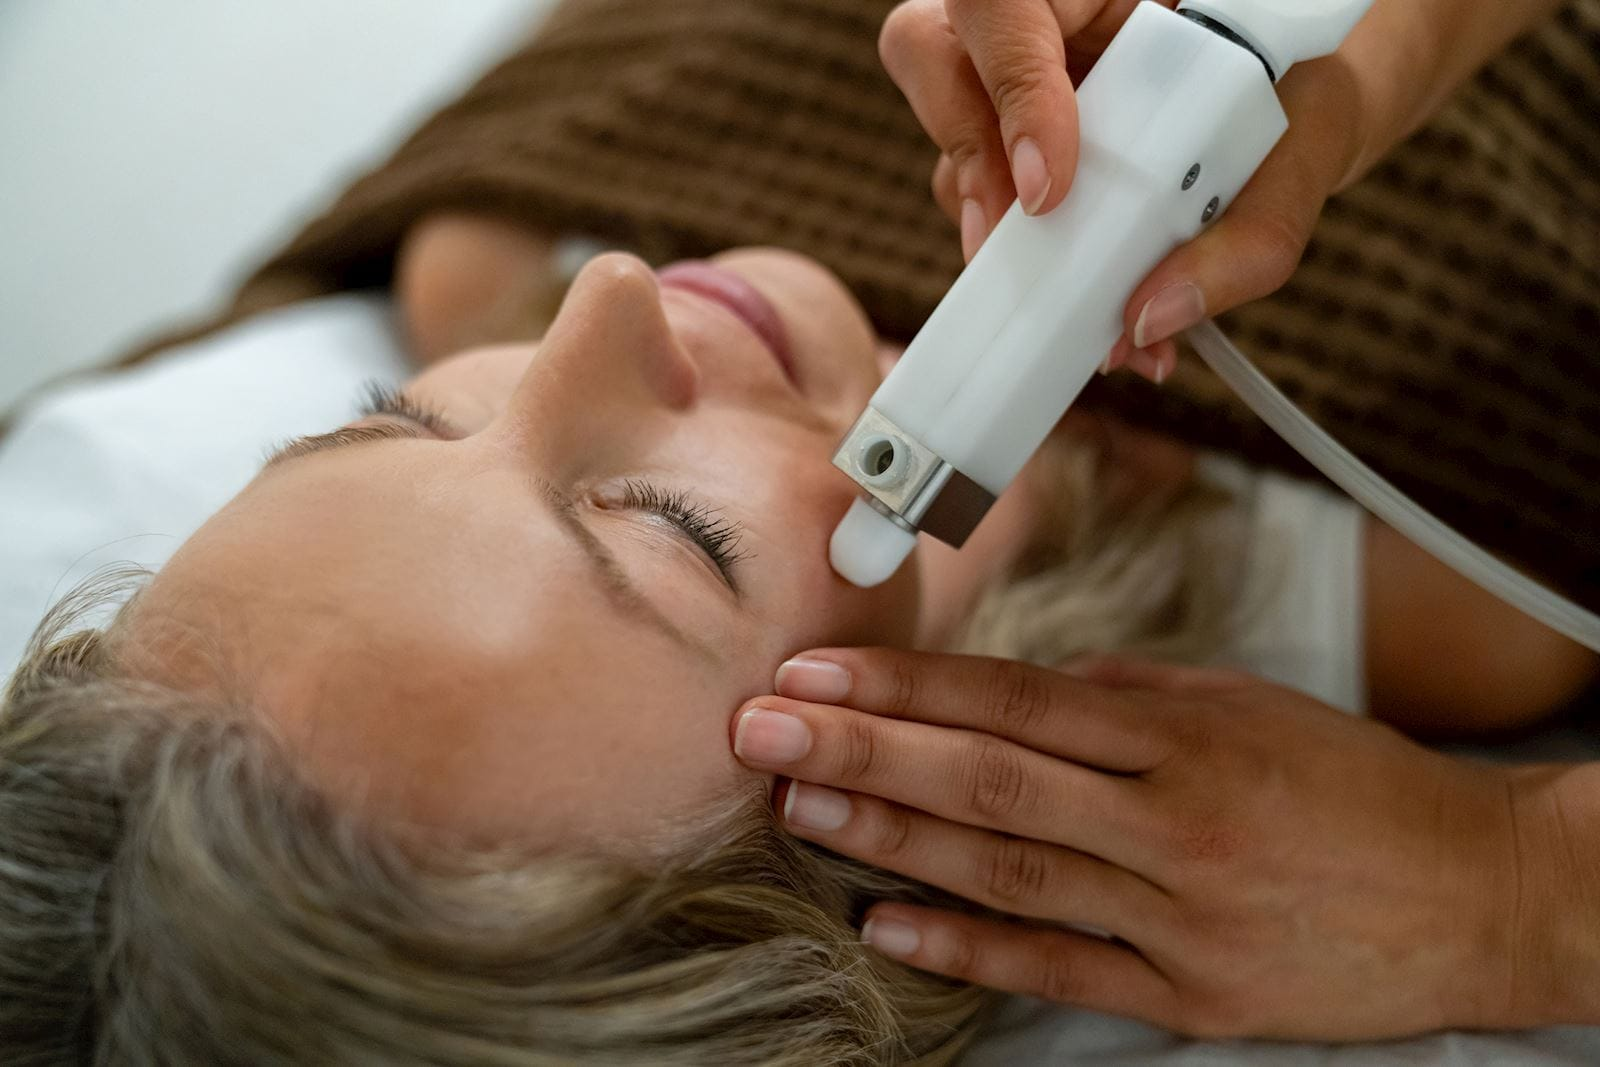 Woman getting a facial laser